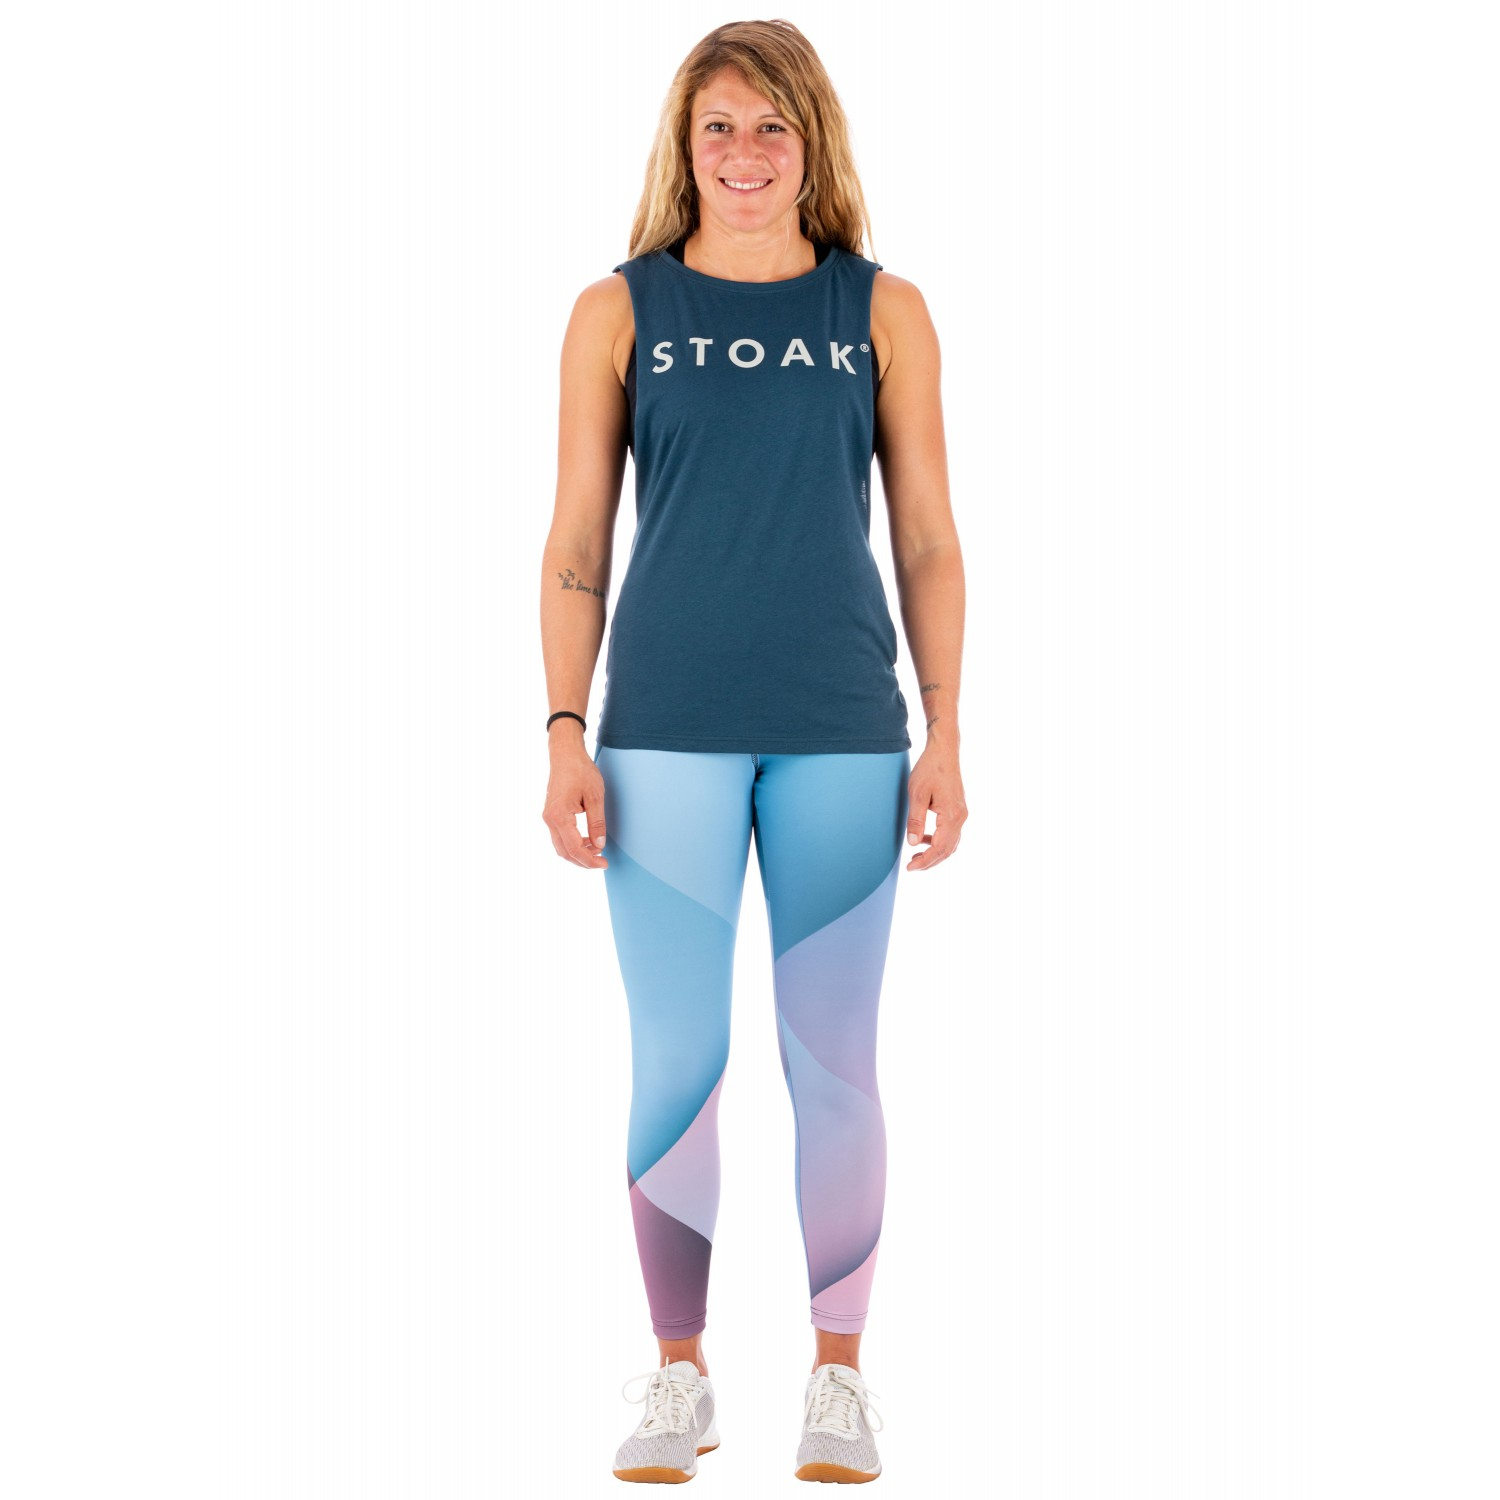 STOAK STEEL - SUNRISE Package Cut-Out-Shirt + Leggings